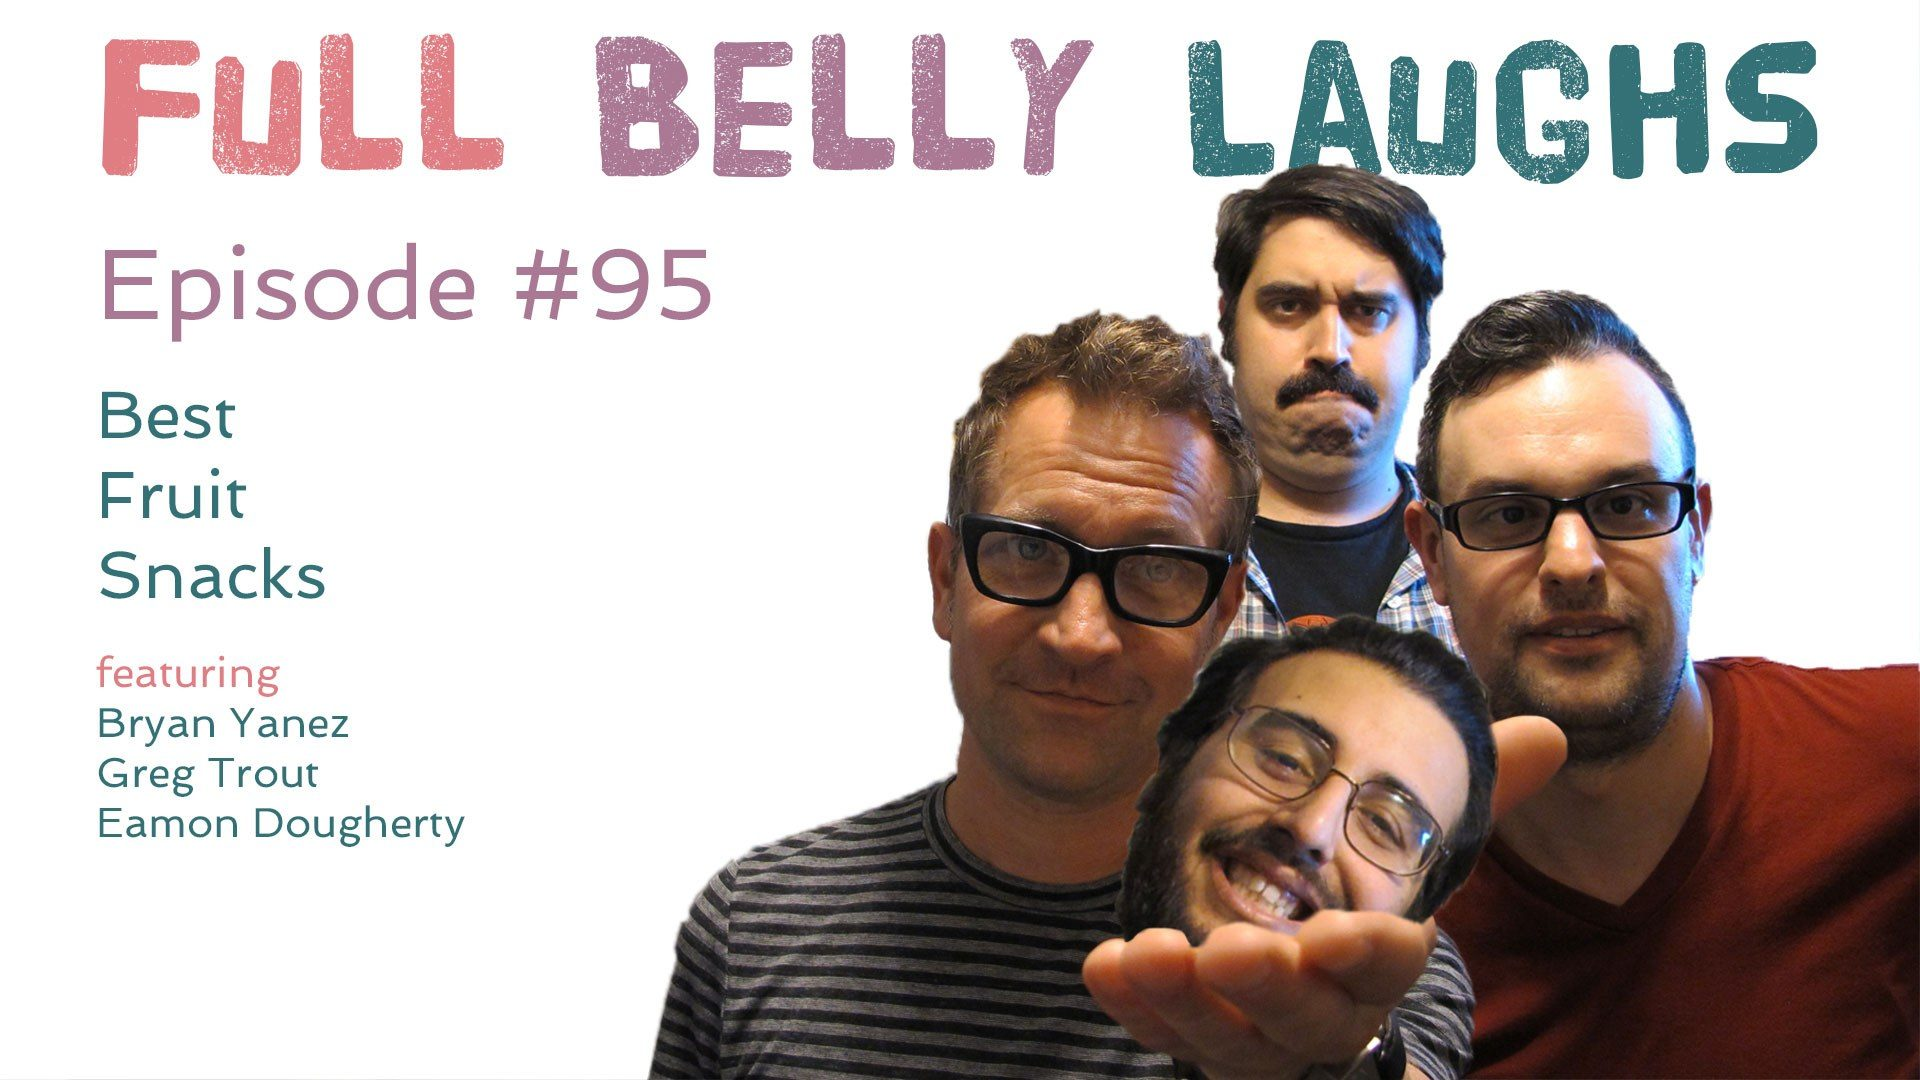 full belly laughs podcast episode 95 best fruit snacks audio artwork